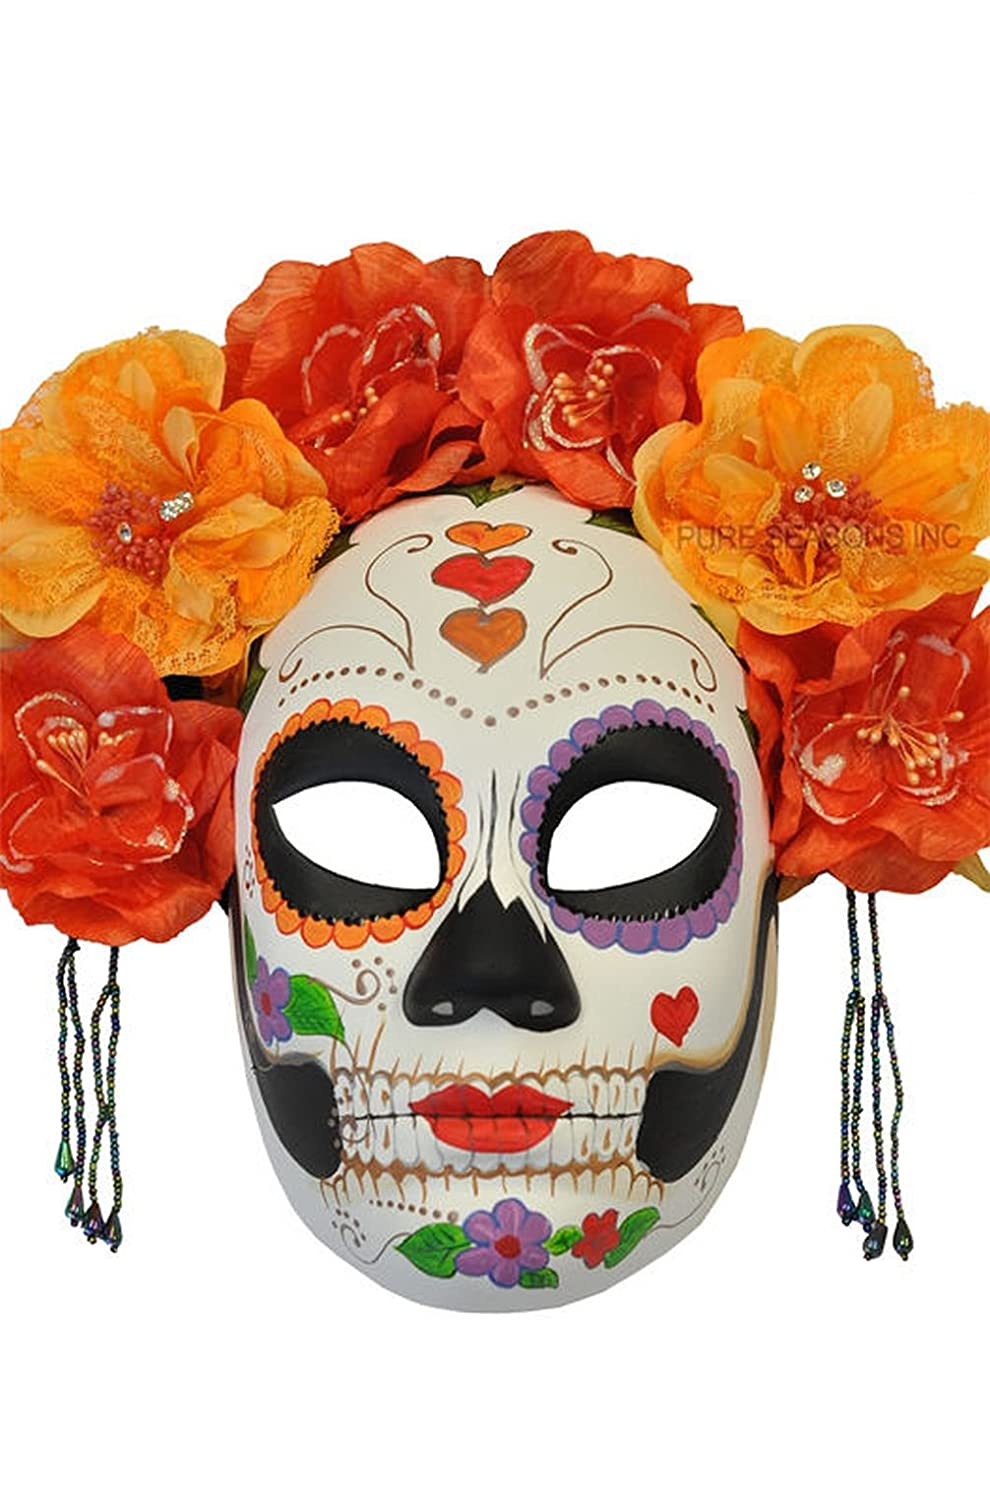 Mememall Fashion La Calavera Catrina Skeleton Skull Masquerade Mask (Red/Orange)